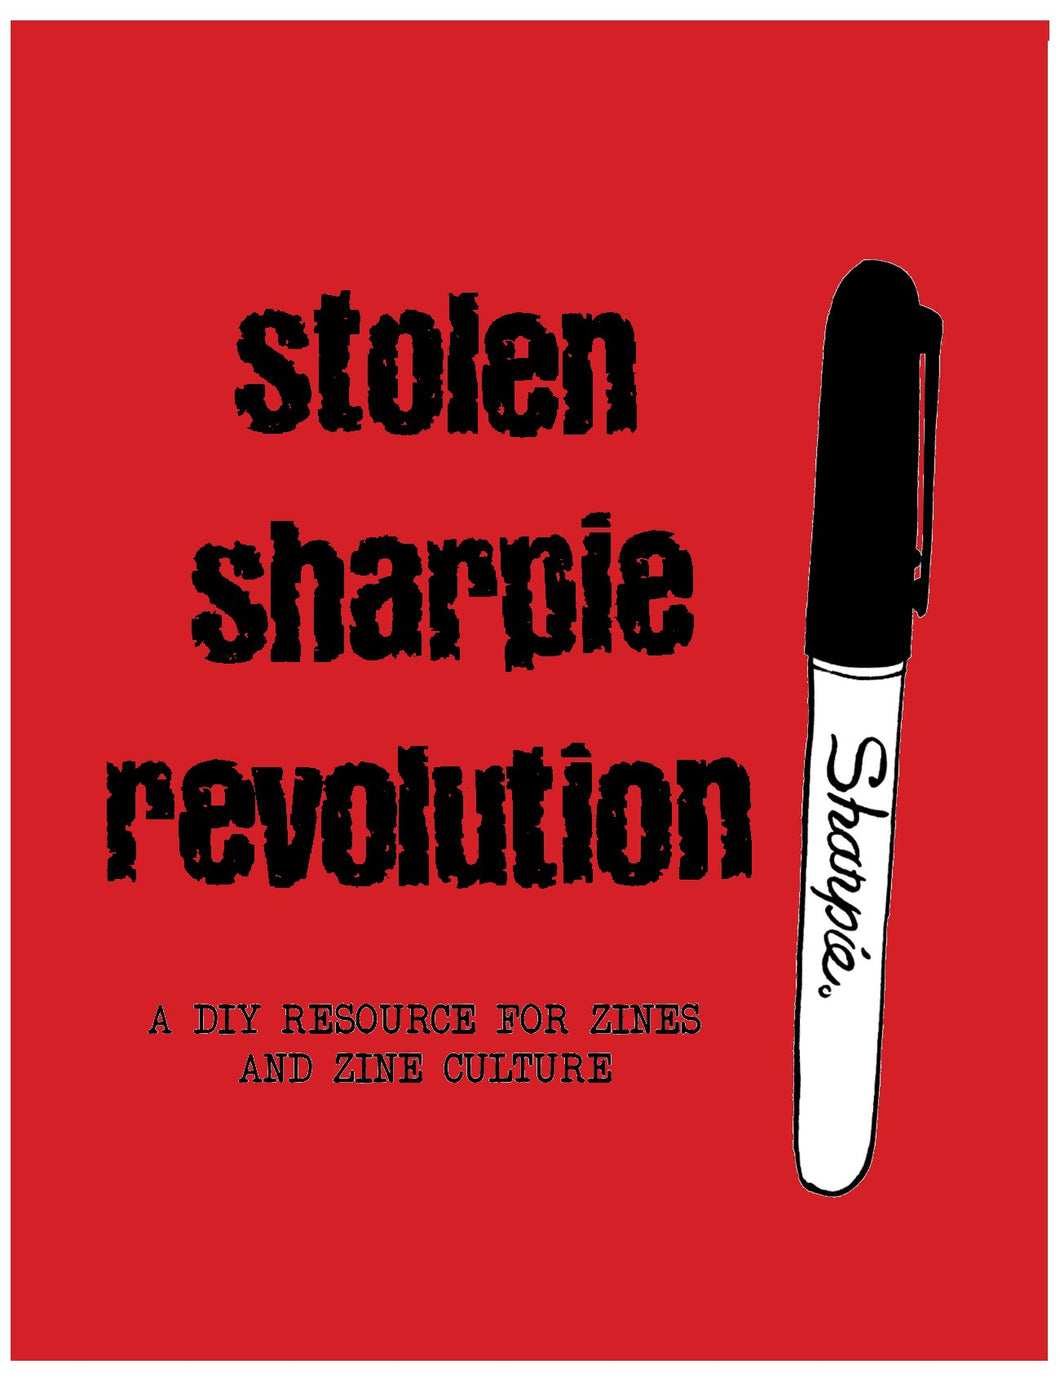 Stolen Sharpie Revolution: a DIY Resource For Zines and Zine Culture by Alex Wrekk